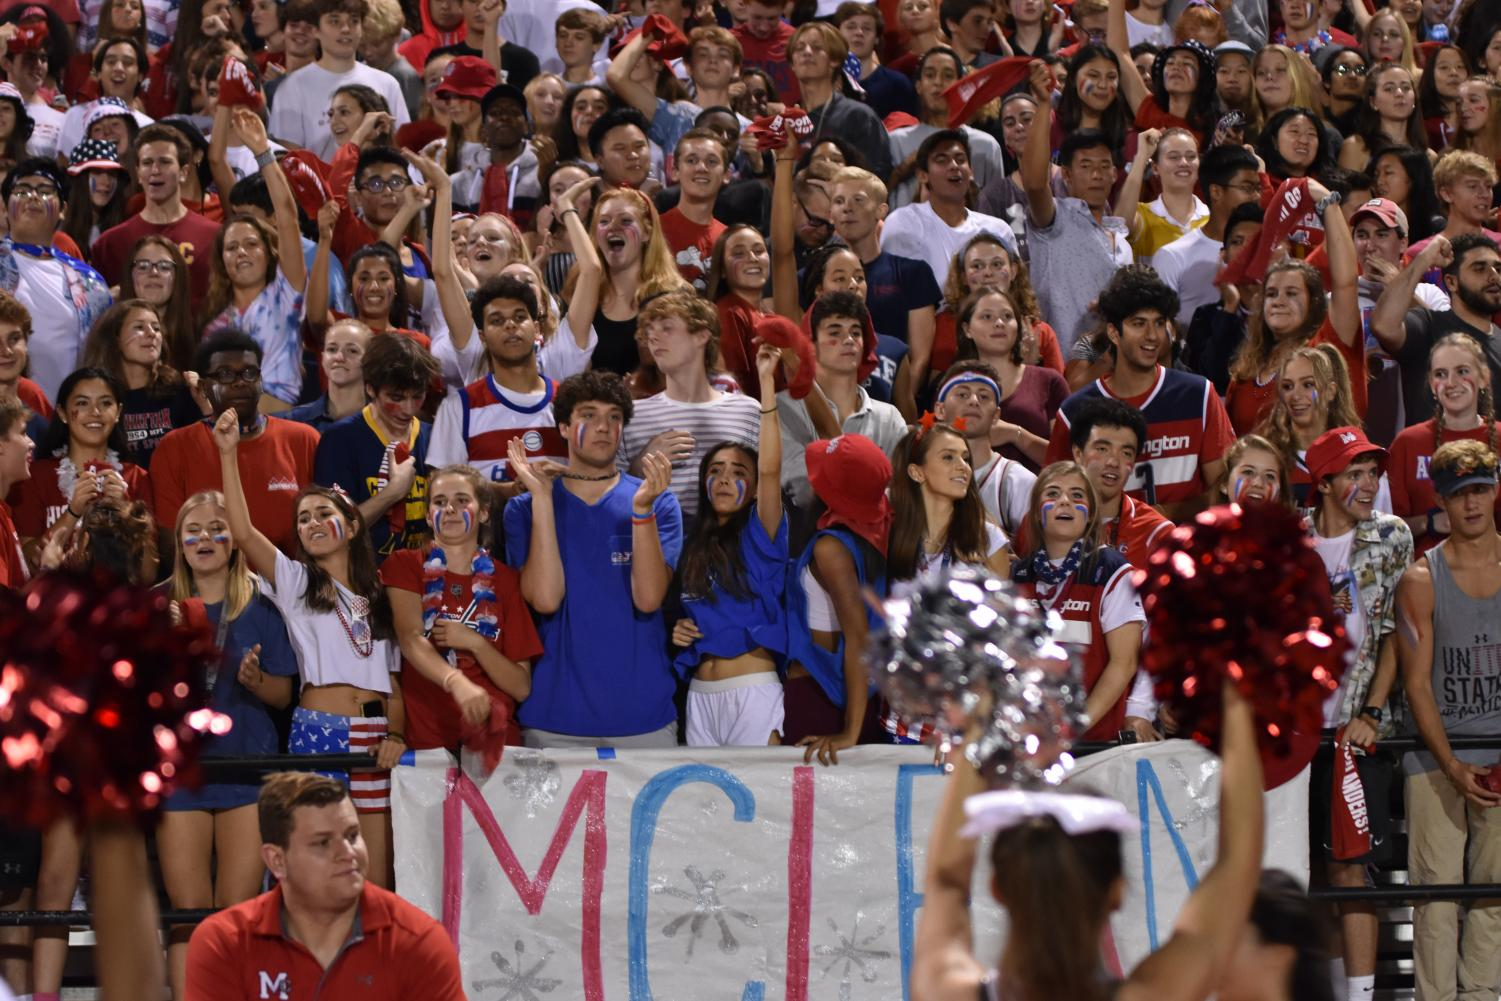 McLean students fill the stands in their USA gear. McLean's cheers could be heard the whole game.